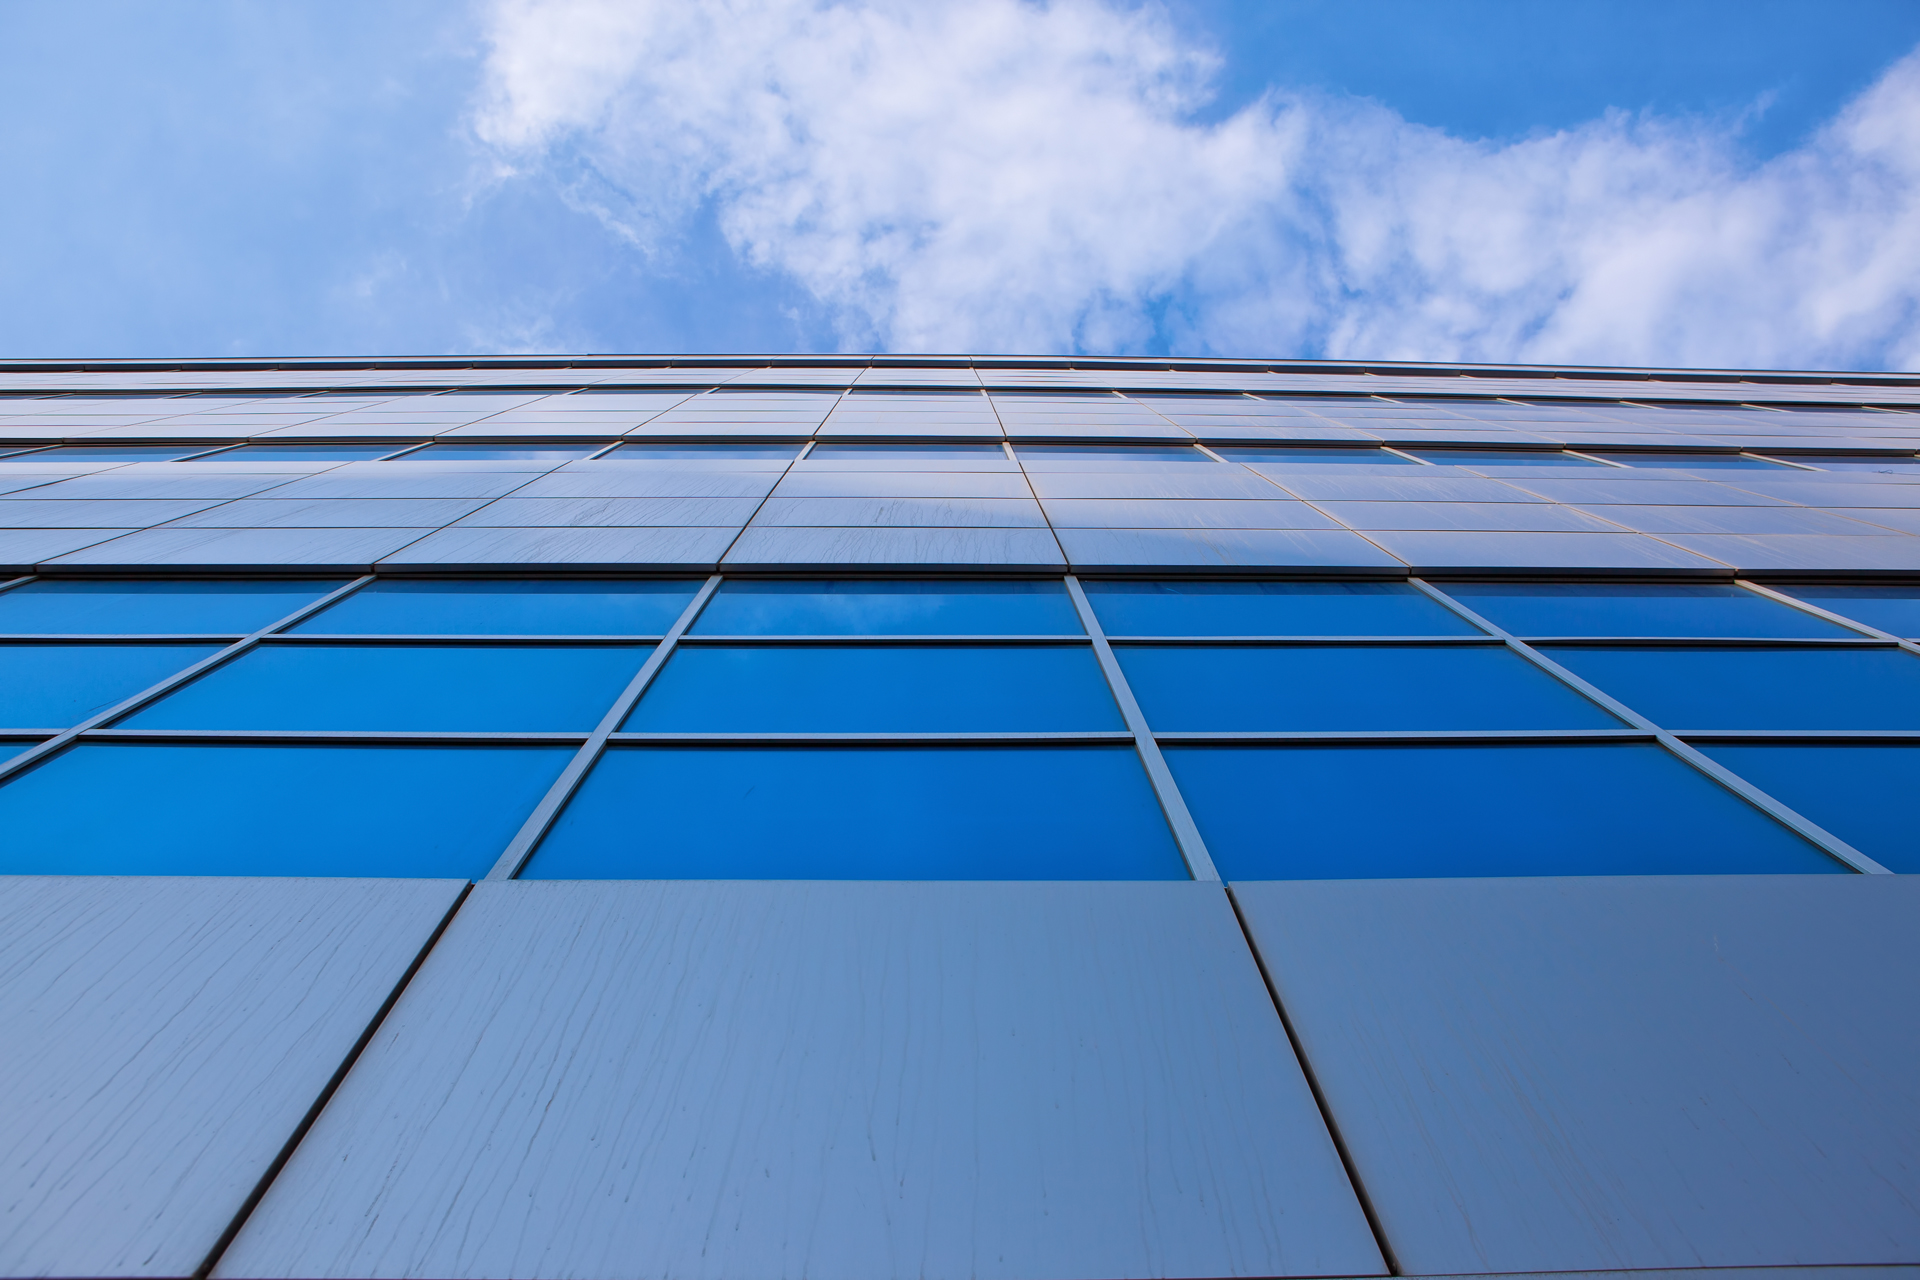 stockvault-building-and-blue-sky138892.jpg - 1.07 MB